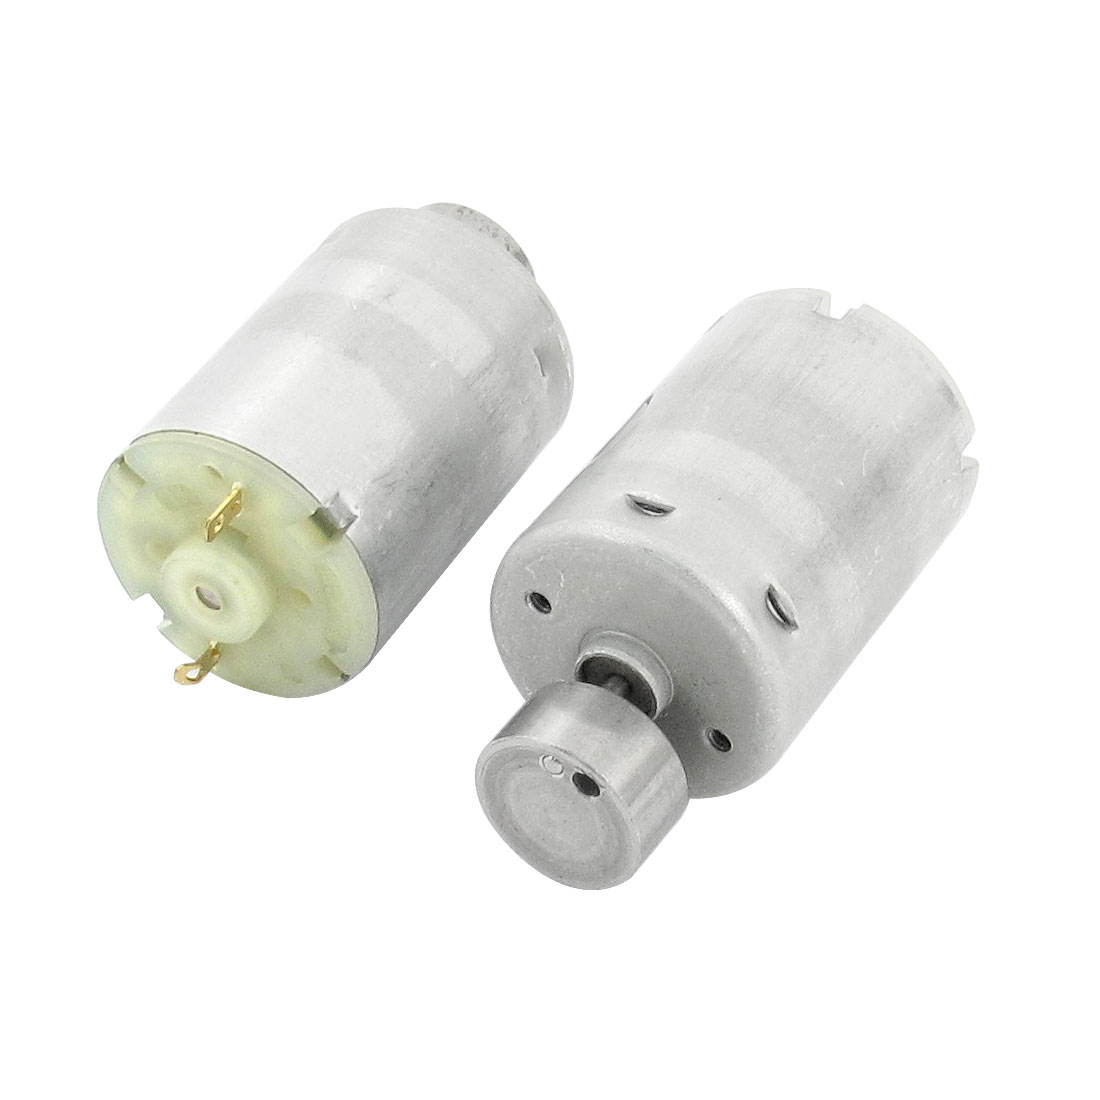 2pcs-35000RPM-DC-6V-Magnetic-Vibrating-Vibration-Mini-Motor